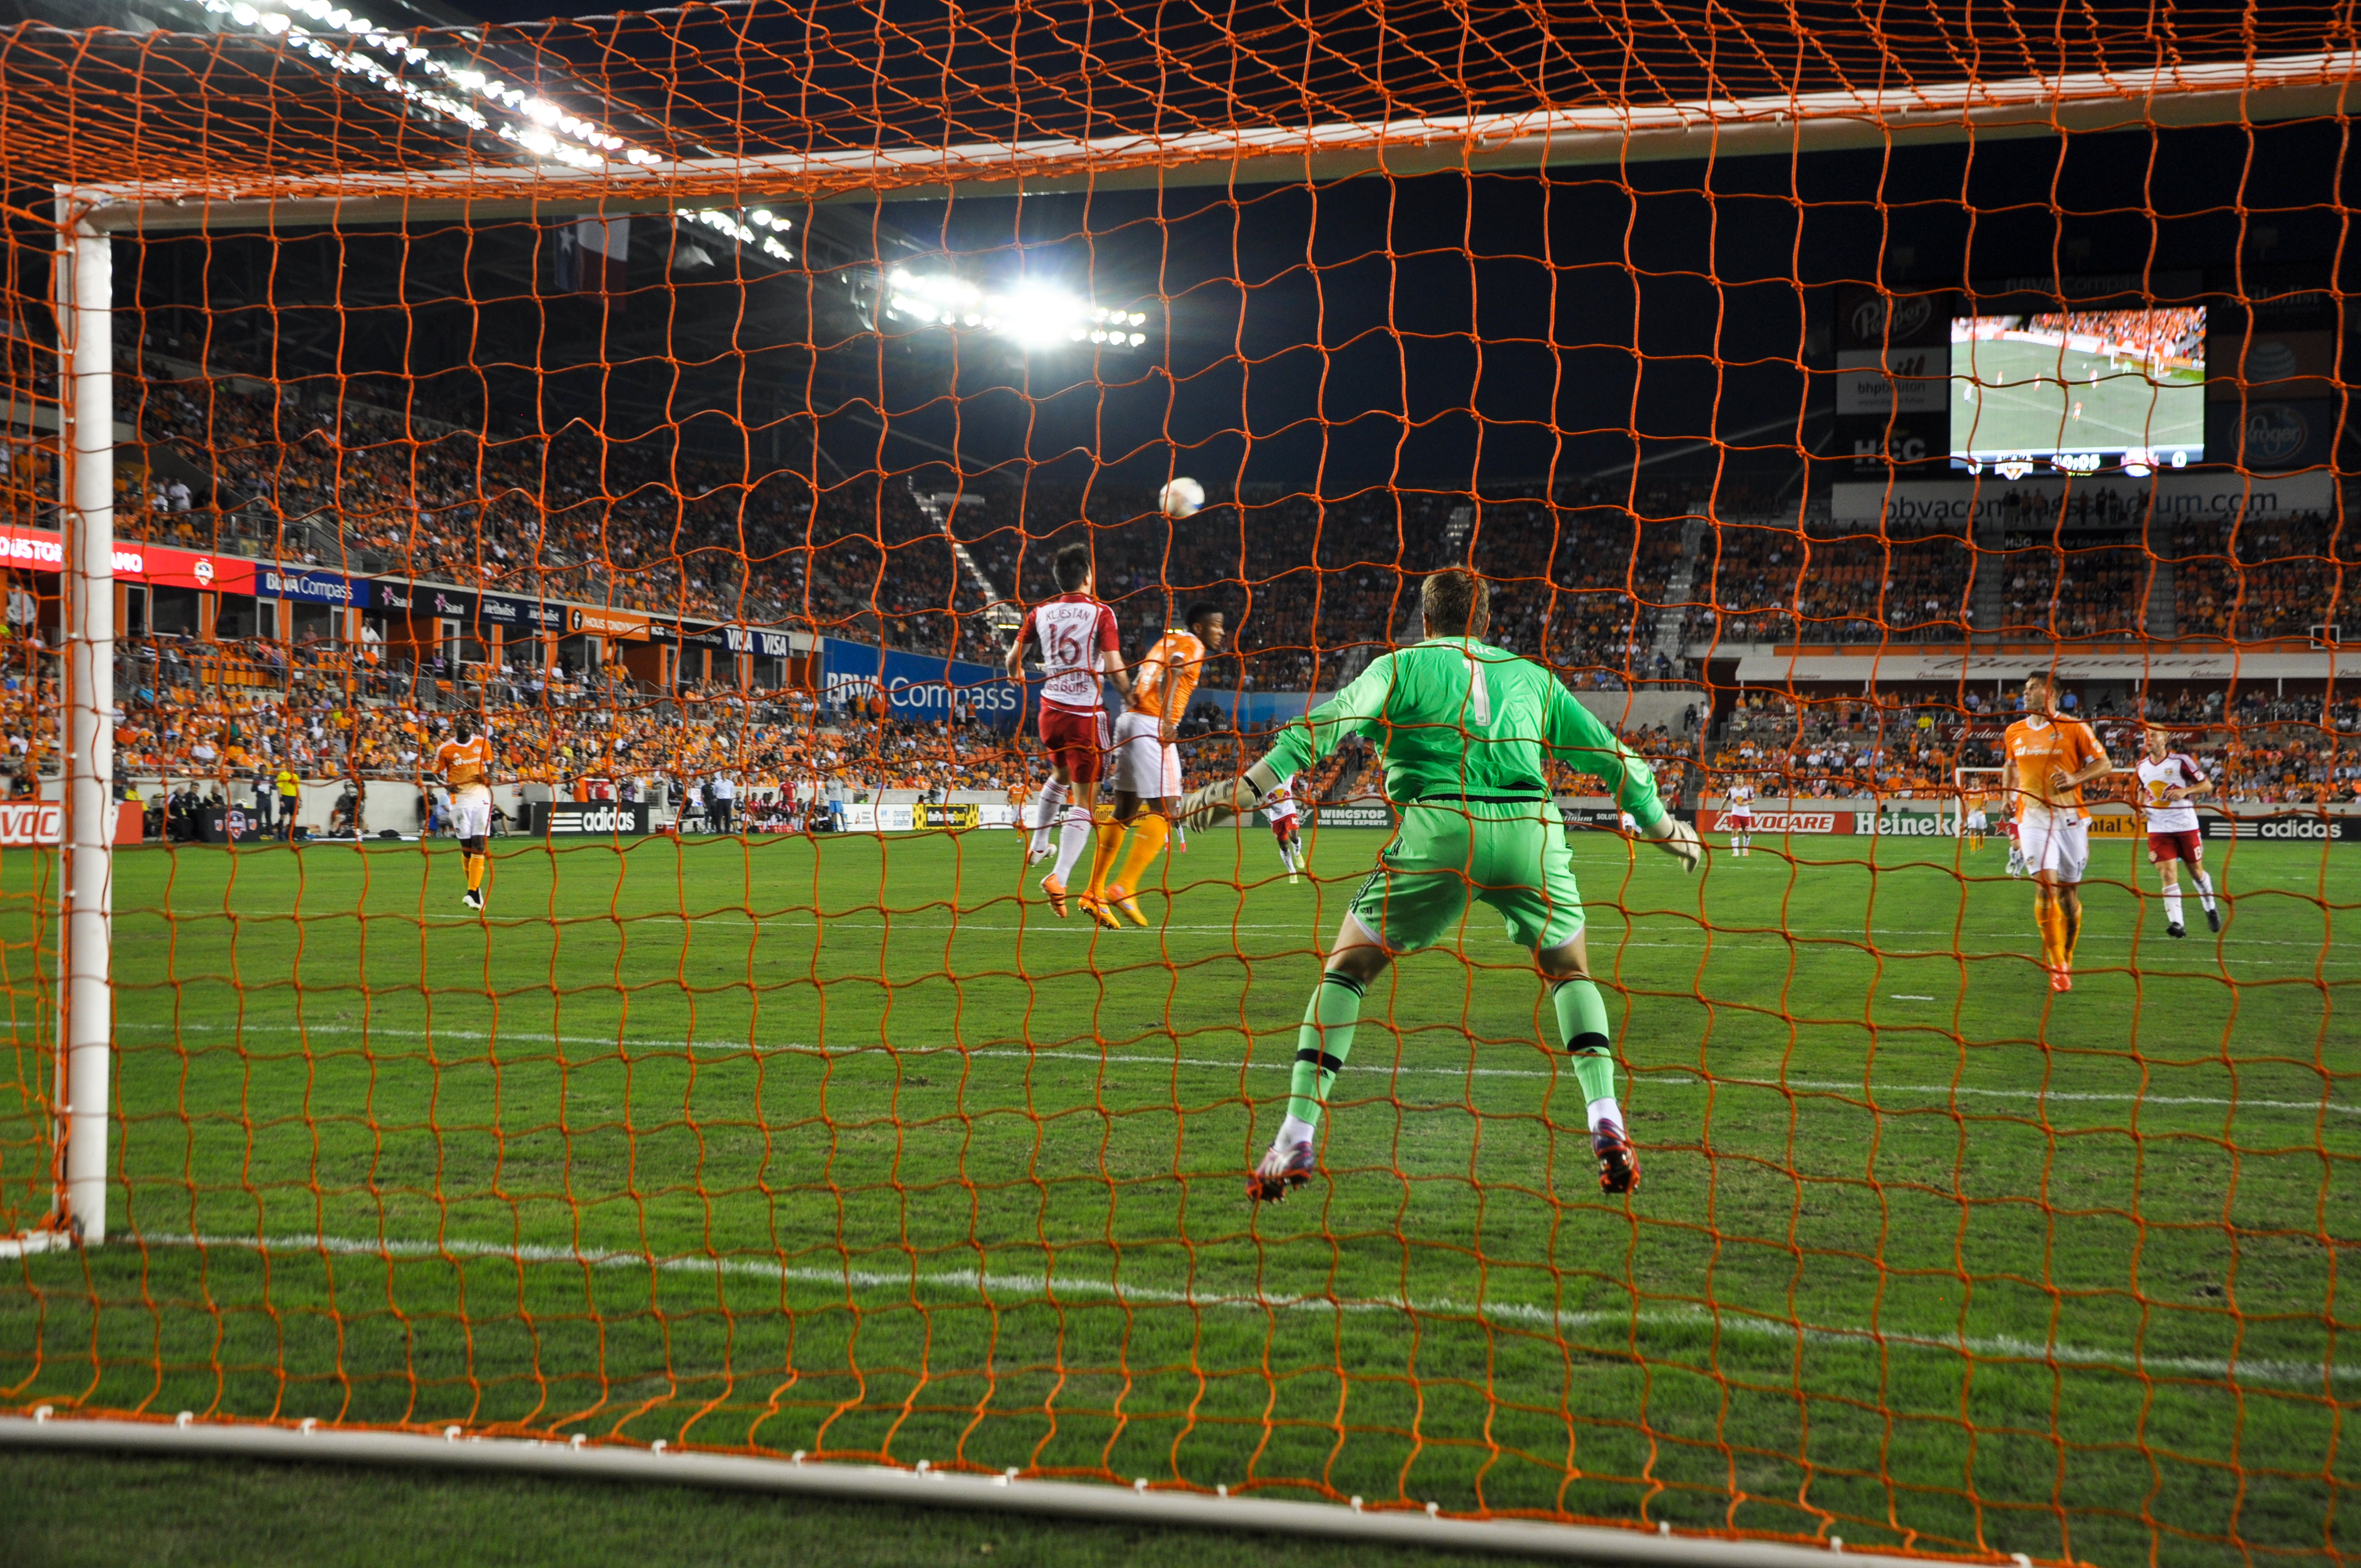 Houston Dynamo Goalie